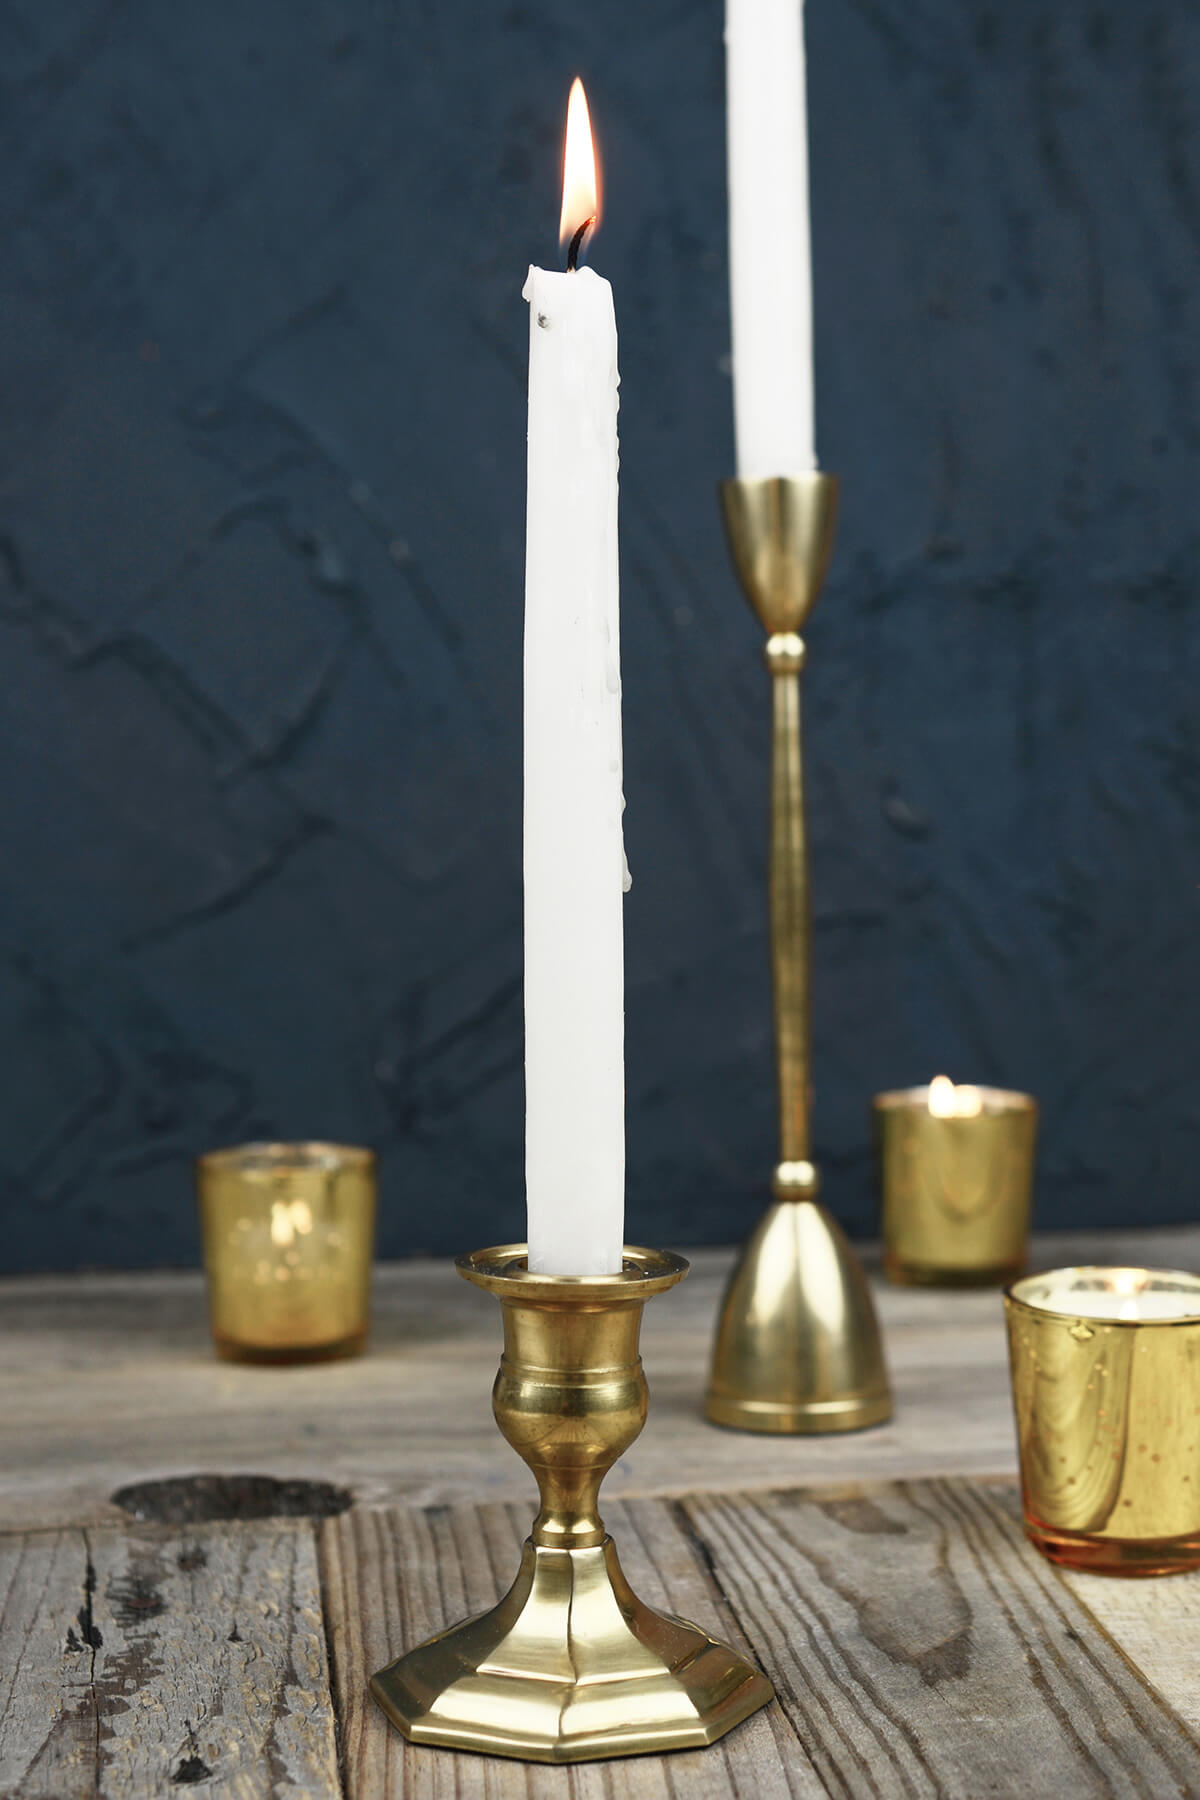 Taper candle holders also make great gifts. If you've been invited to a wedding, give the bride and groom a gorgeous pair of crystal candlesticks. For a birthday for a good friend, choose contemporary holders with bold colors and modern patterns.